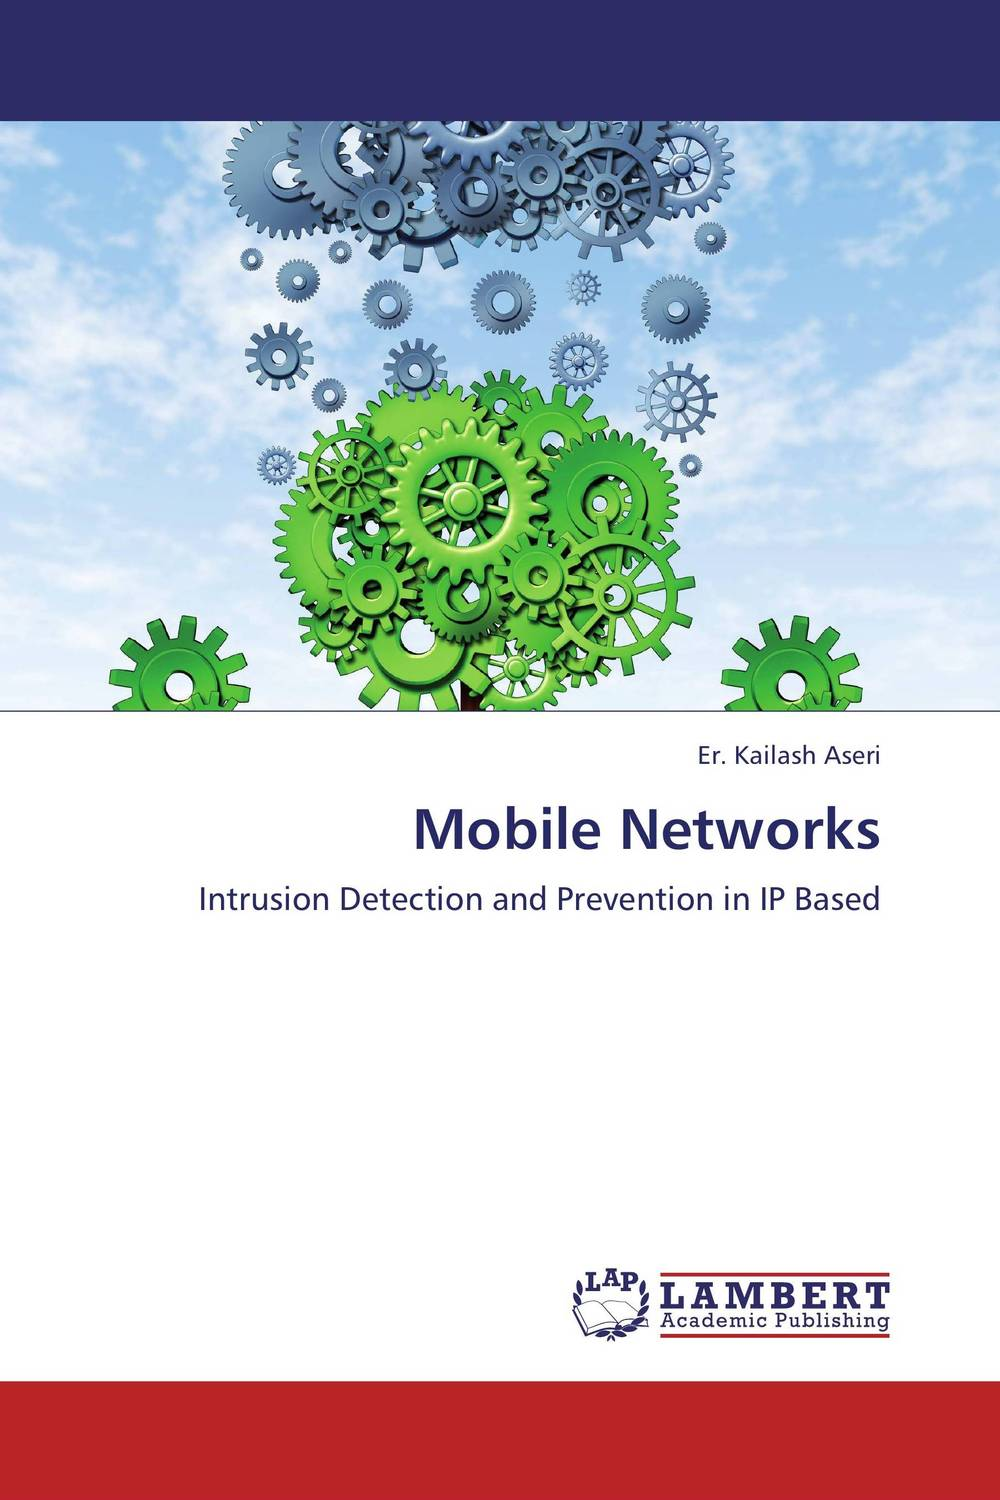 Mobile Networks mcp 1